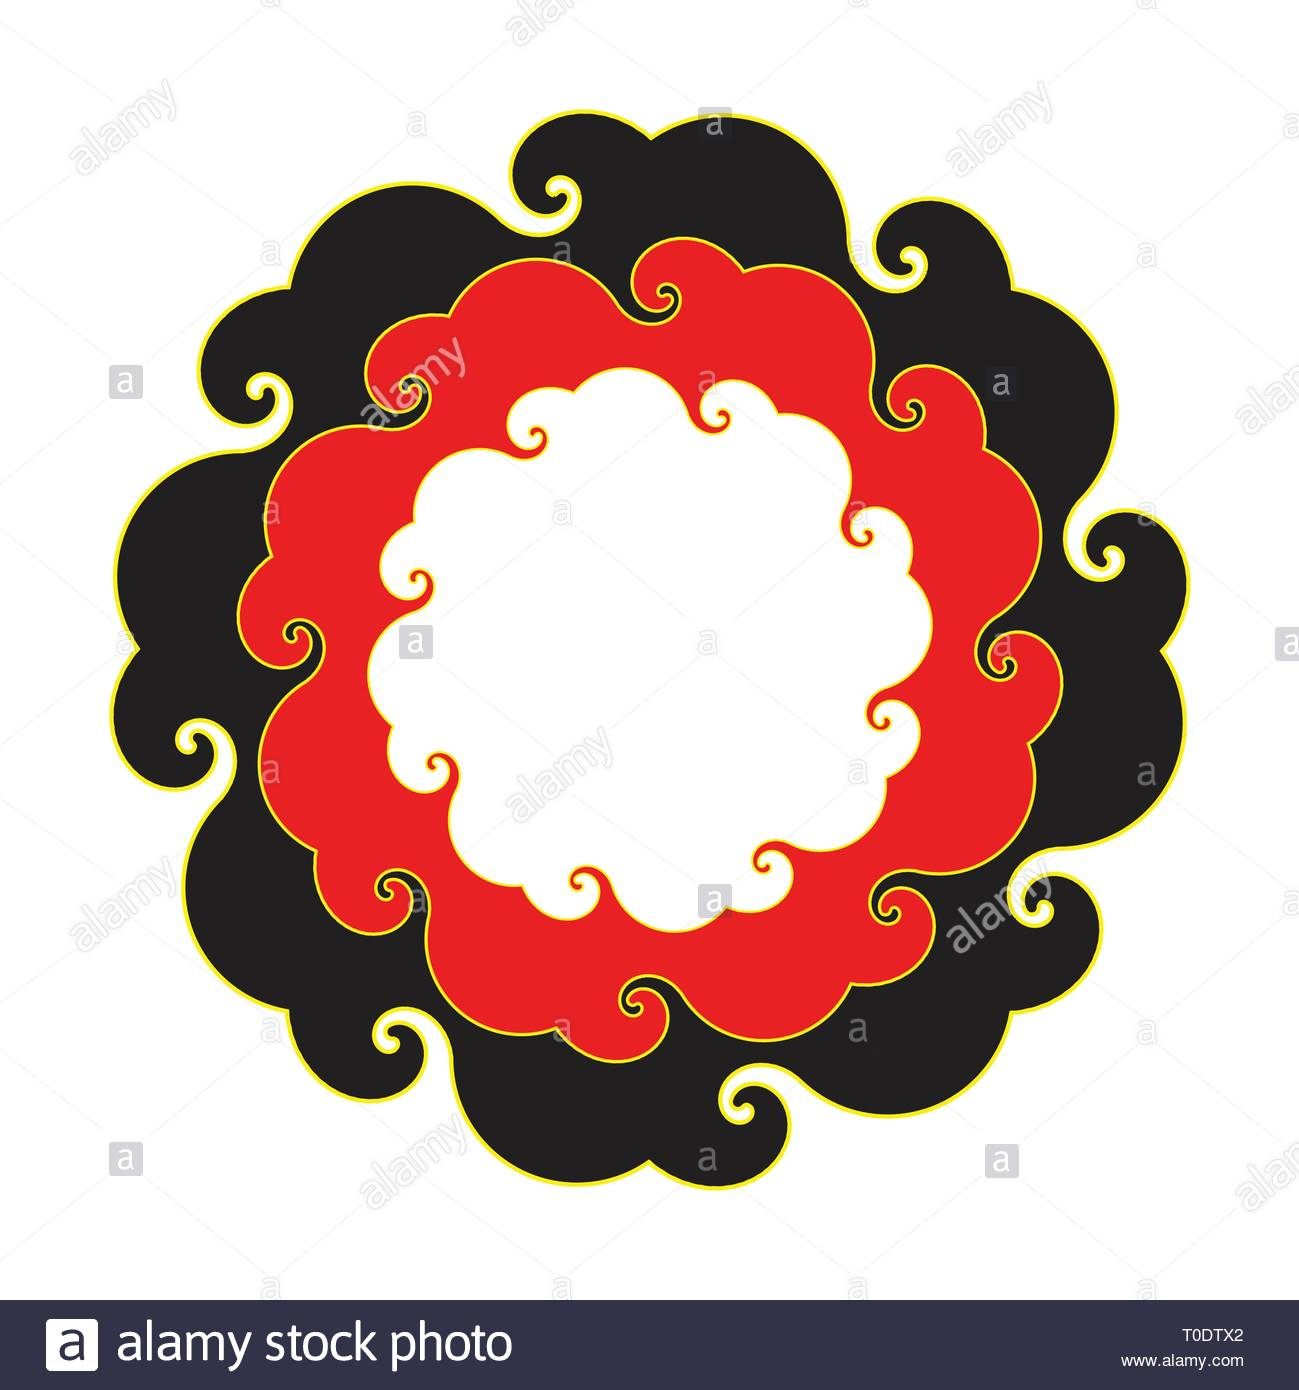 curly round clouds frame in red black gold shades - Stock Vector